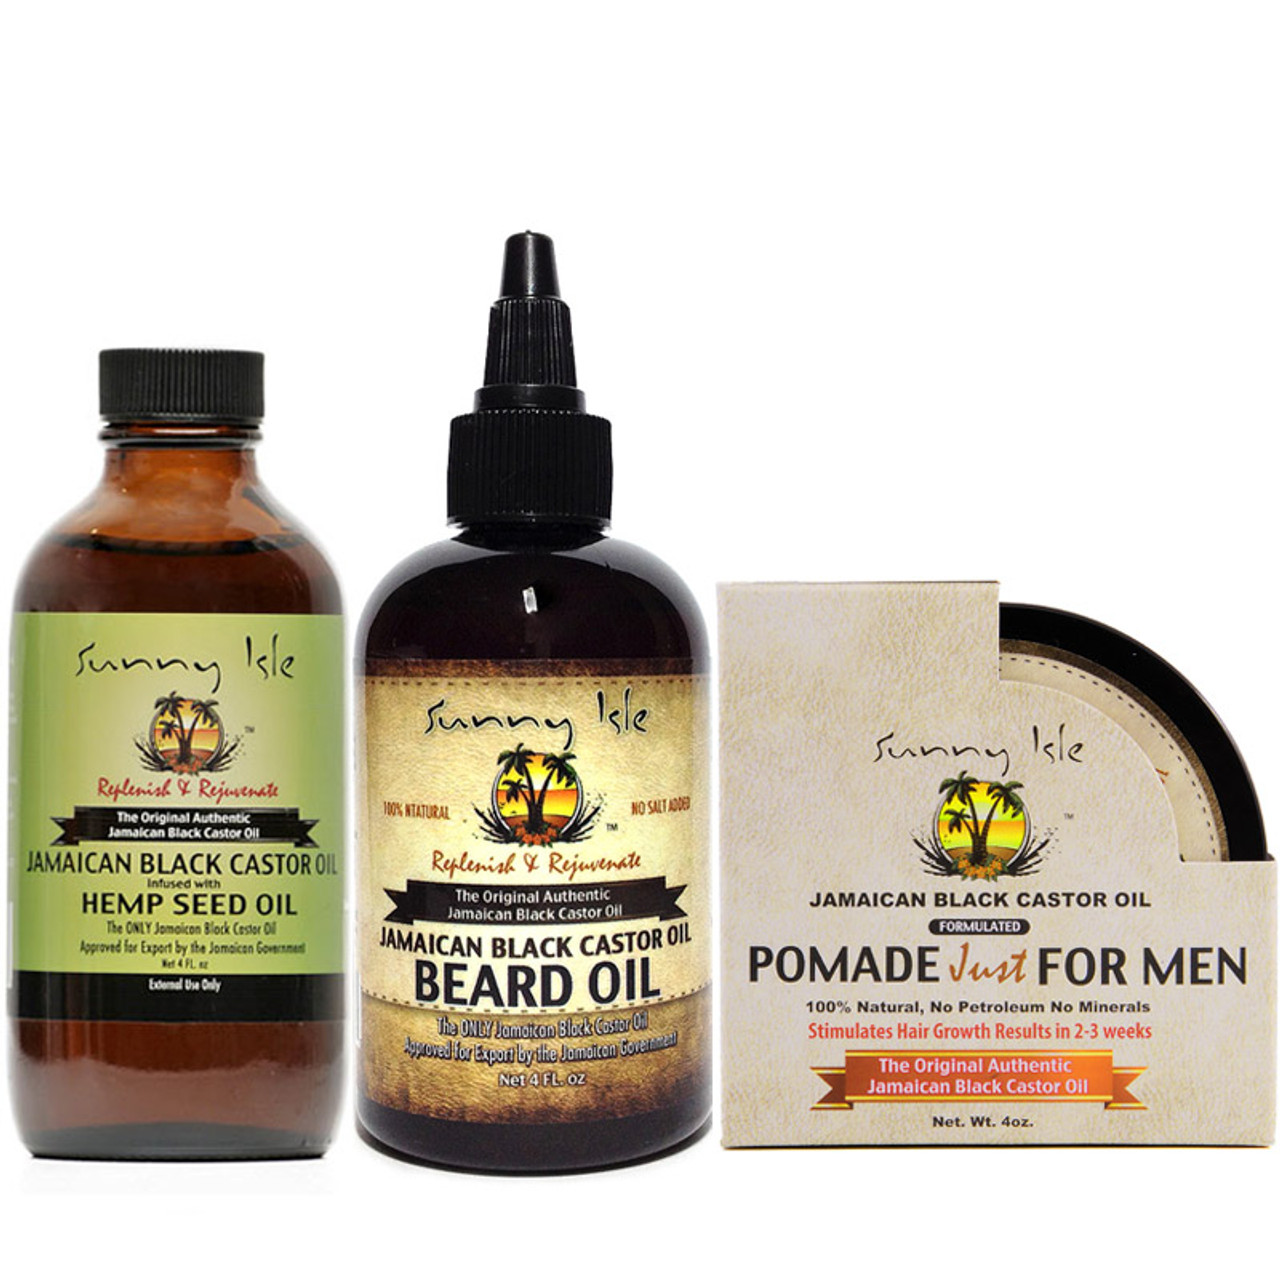 310b7241ad3 Sunny-Isle-Jamaican-Black-Castor-Oil-Beard-Oil-Just-for-Men-Pomade-and-JBCO -Hemp-4oz-Combo-__74115.1497777284.jpg?c=2&imbypass=on